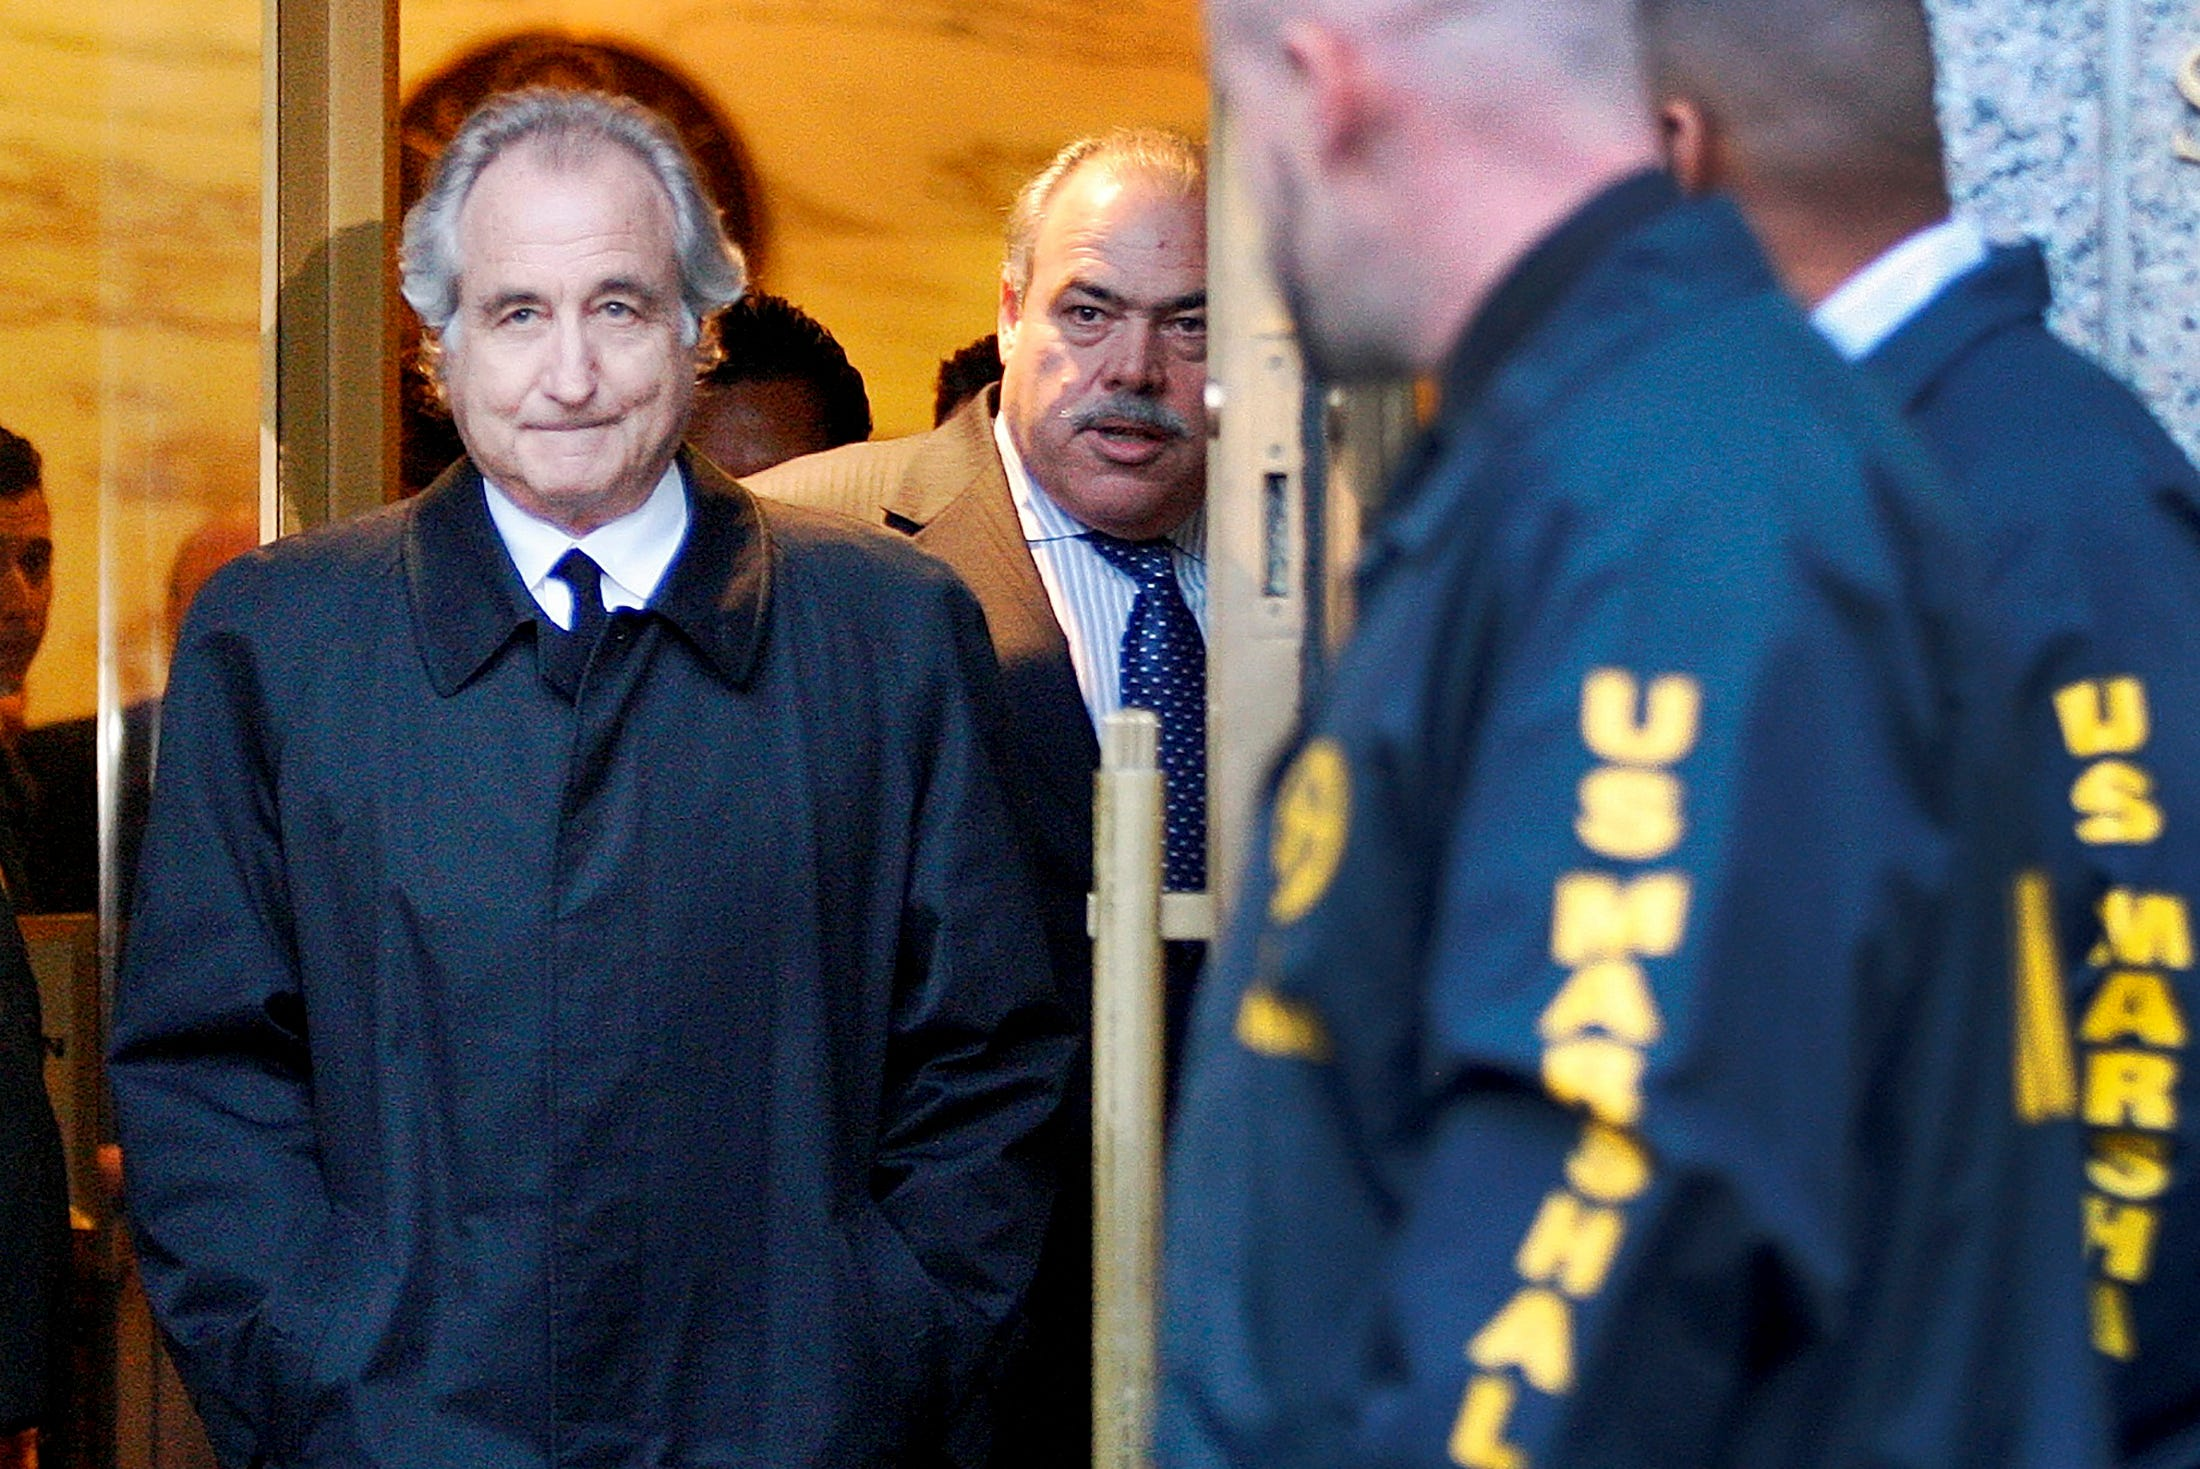 Who are some of the celebrities scammed in Bernie Madoff's Ponzi scheme?